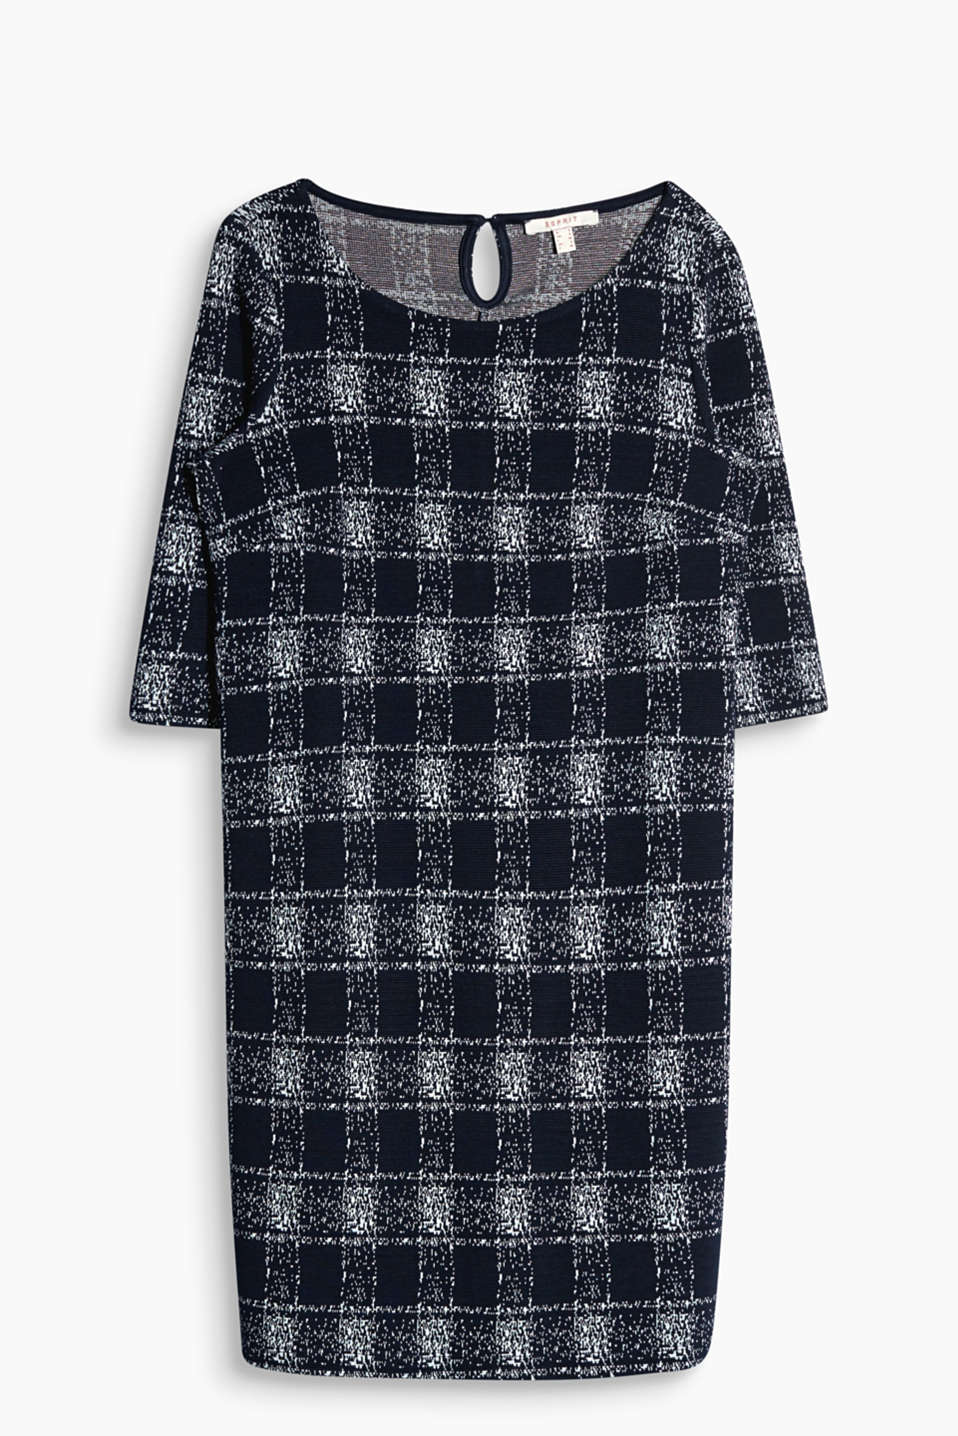 Ravishingly retro: figure-hugging, stretch jersey dress with a textured check pattern